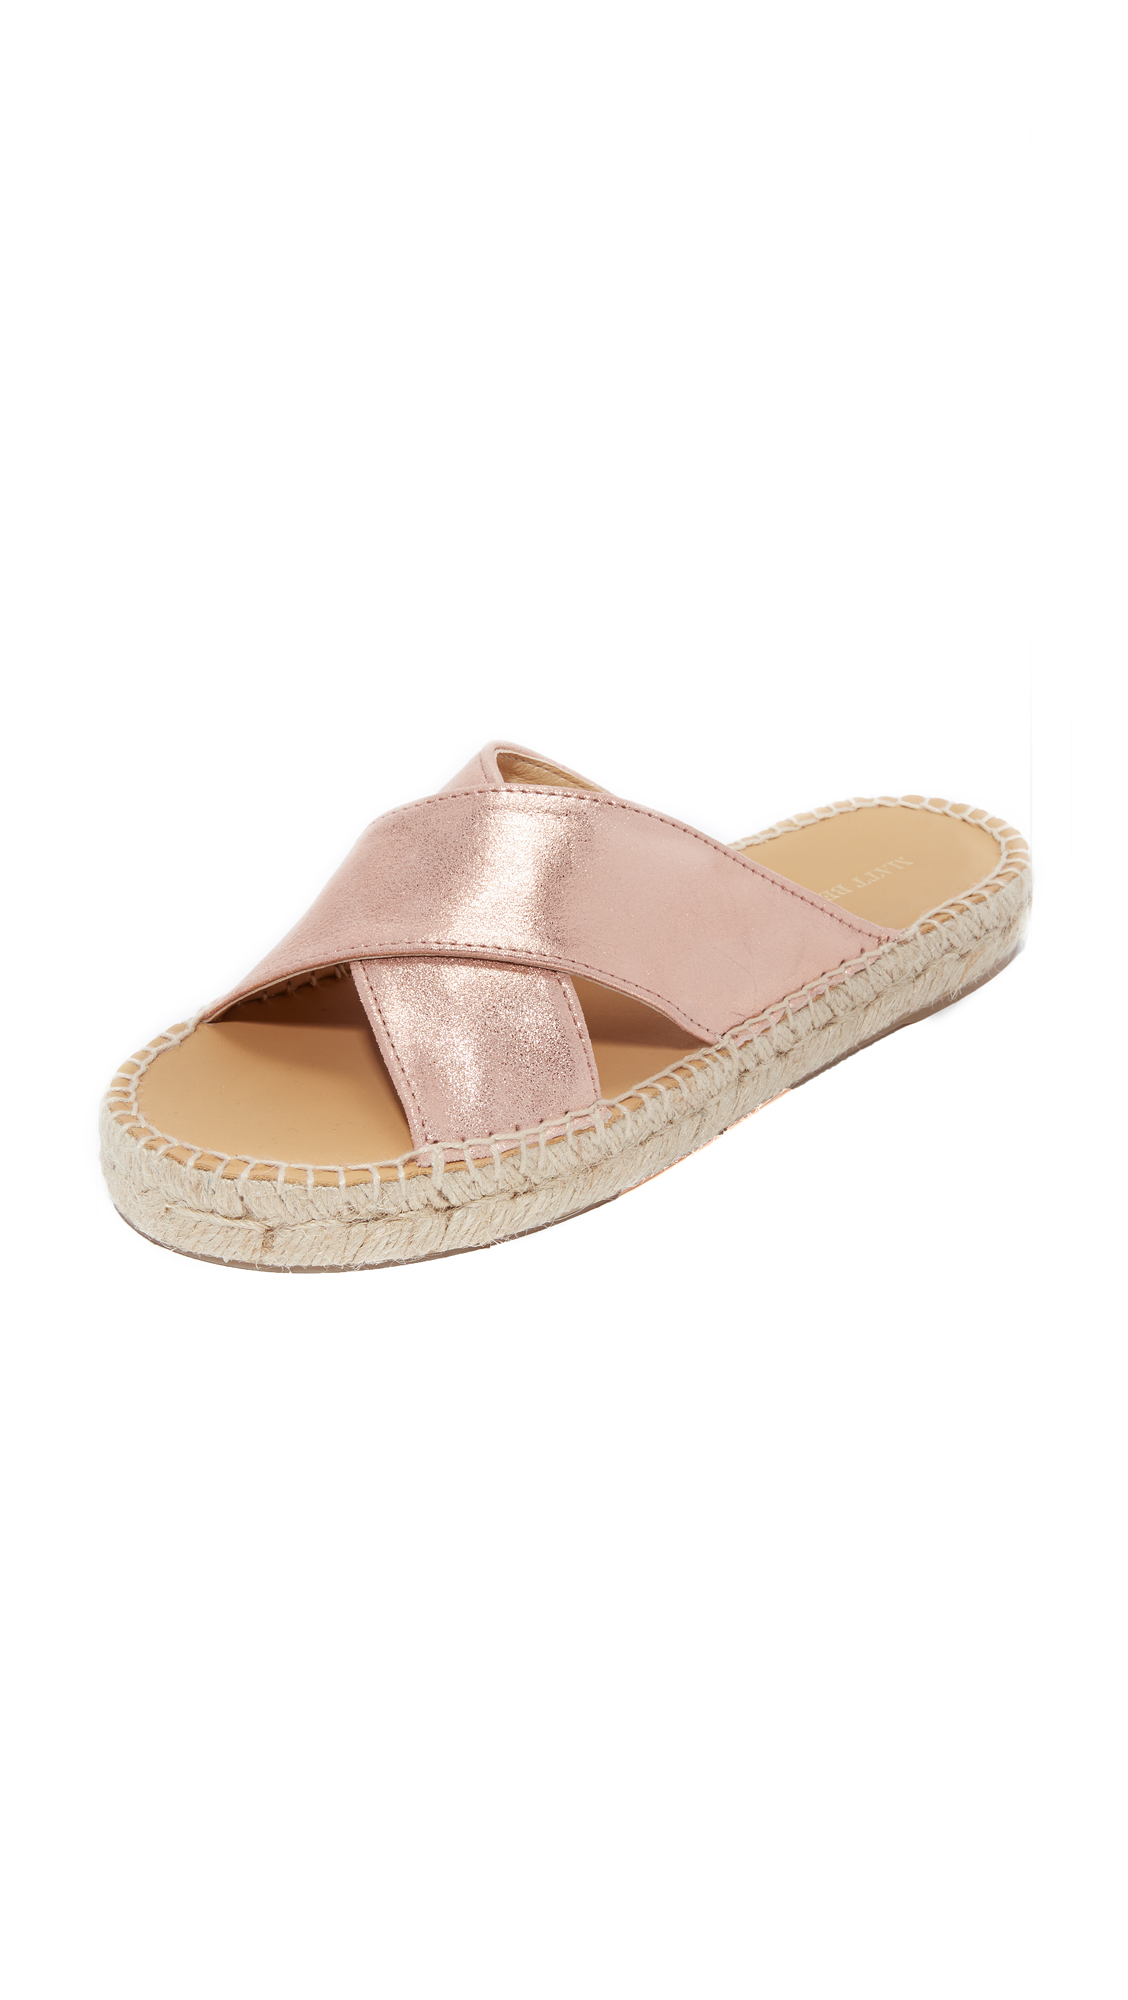 Matt Bernson Porto Metallic Slides - Rose Gold